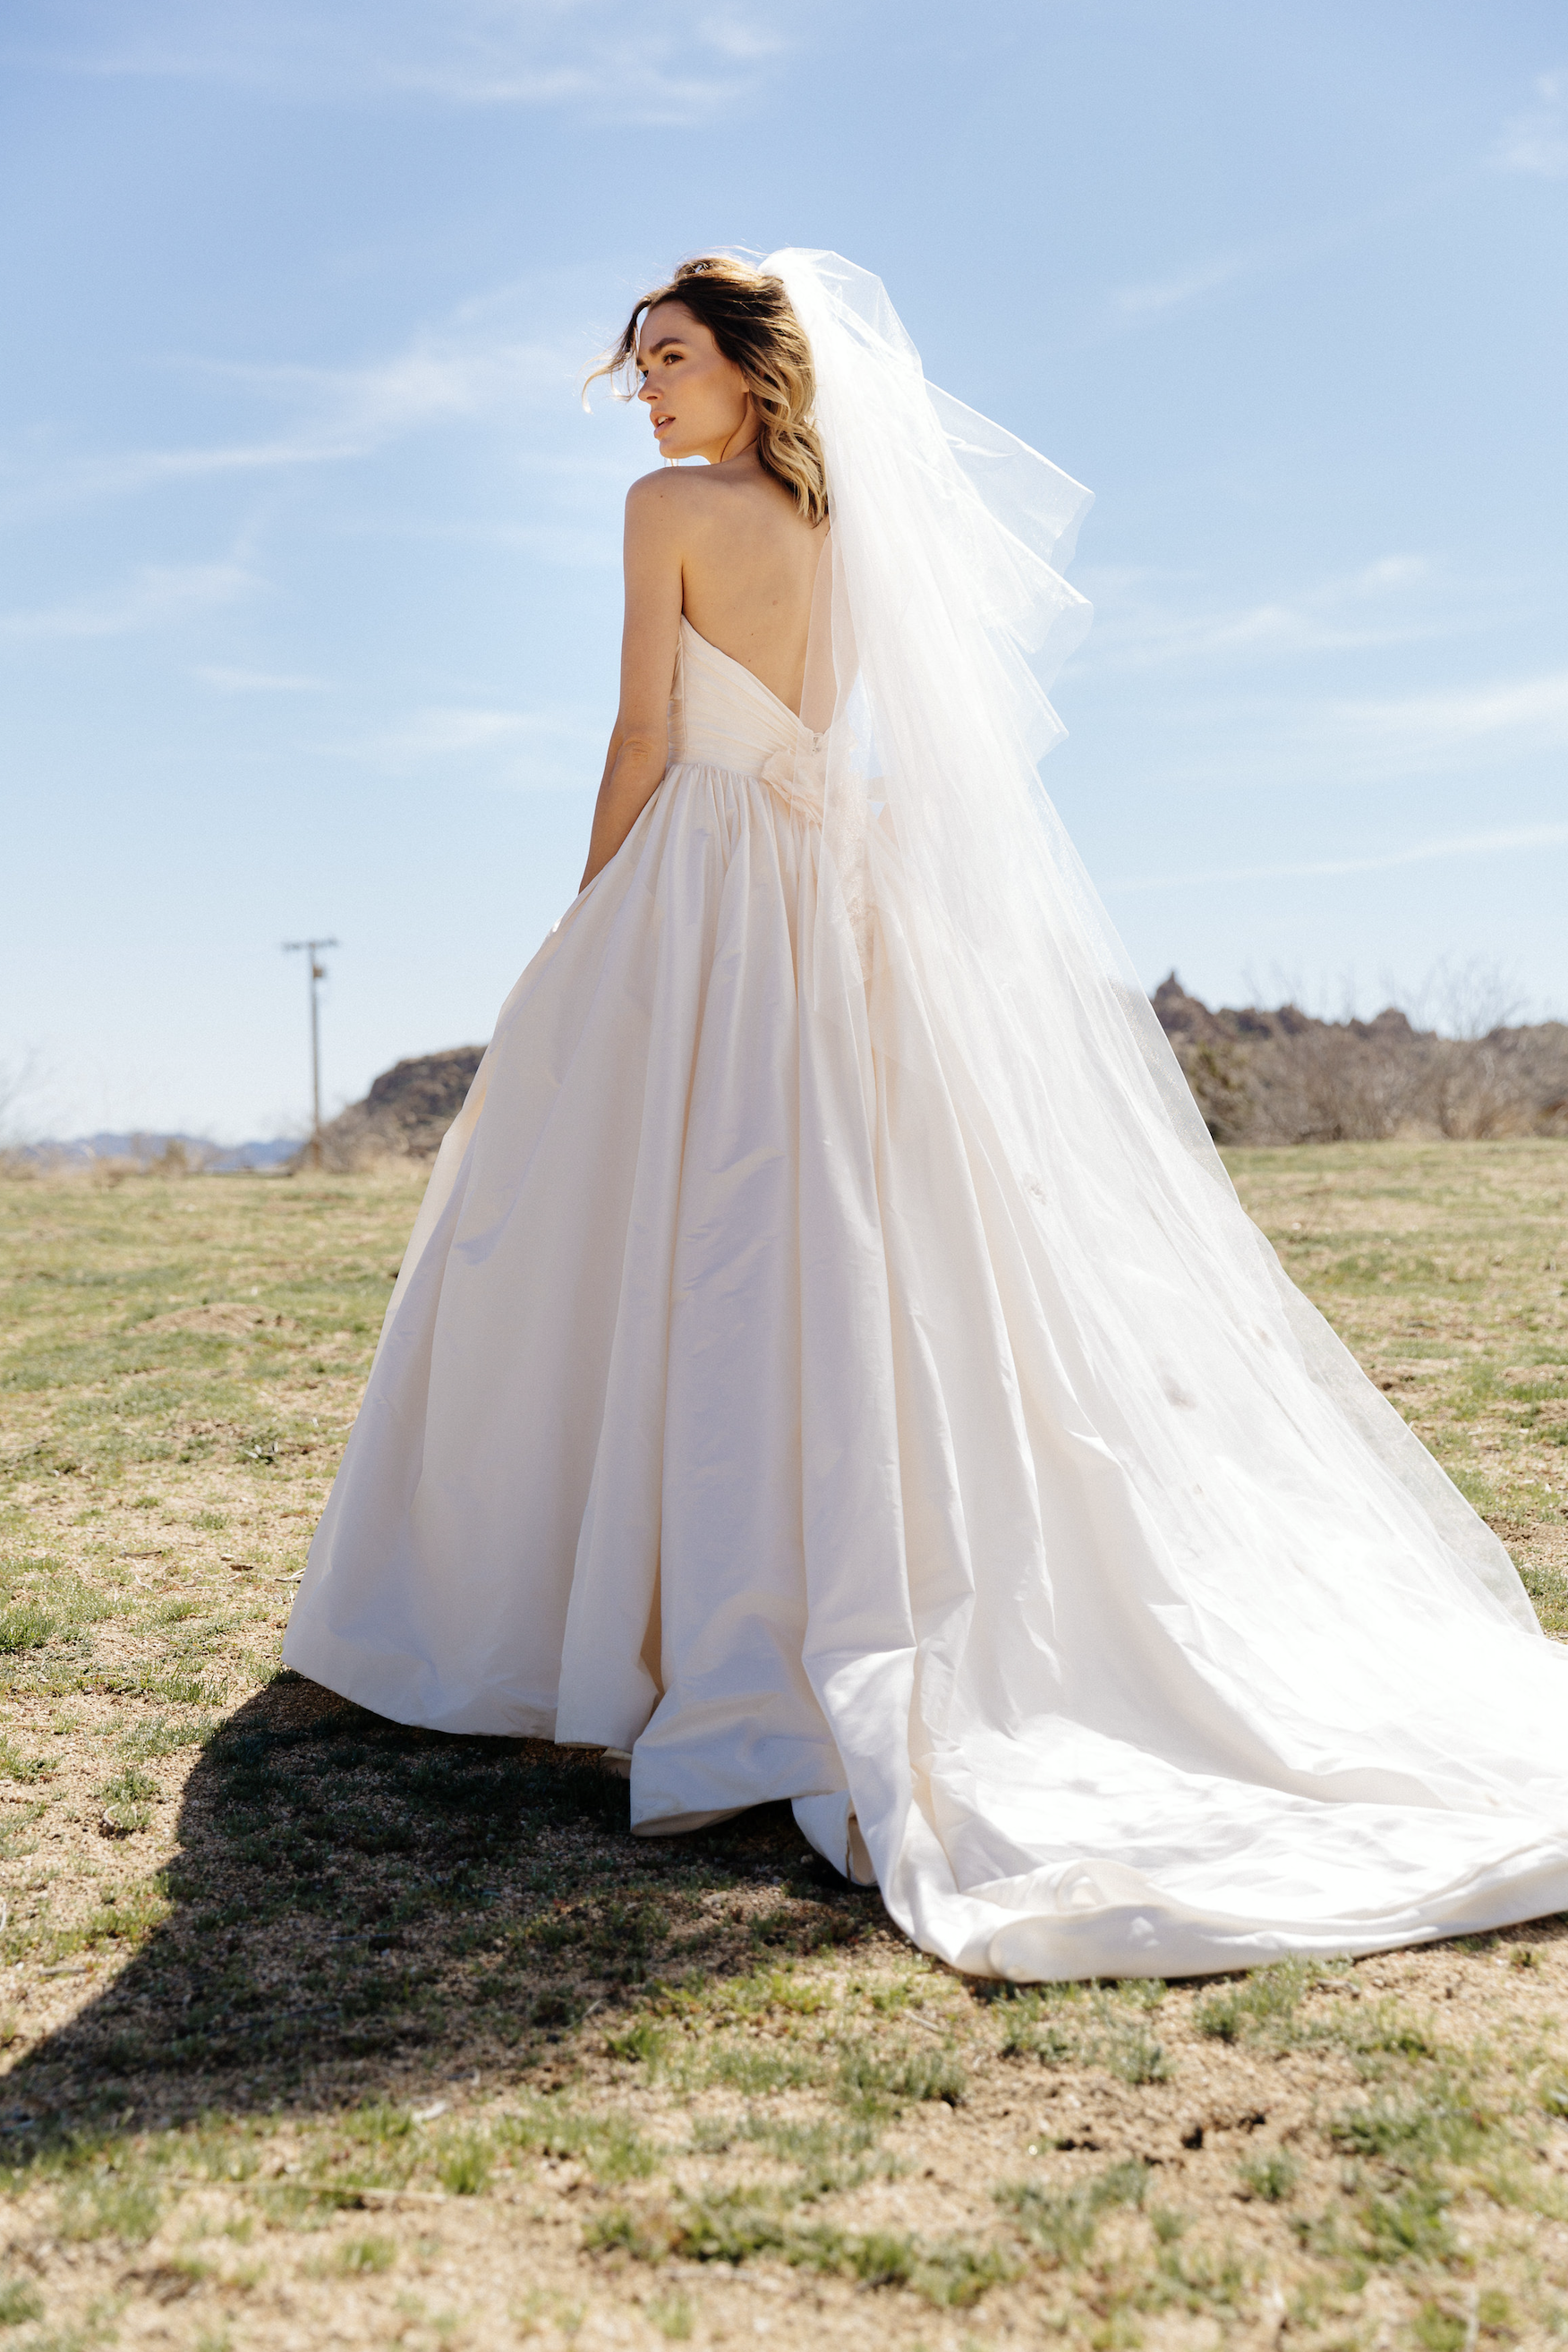 LeaAnn Belter Bridal Diana Gown and Diana Veil Wedding